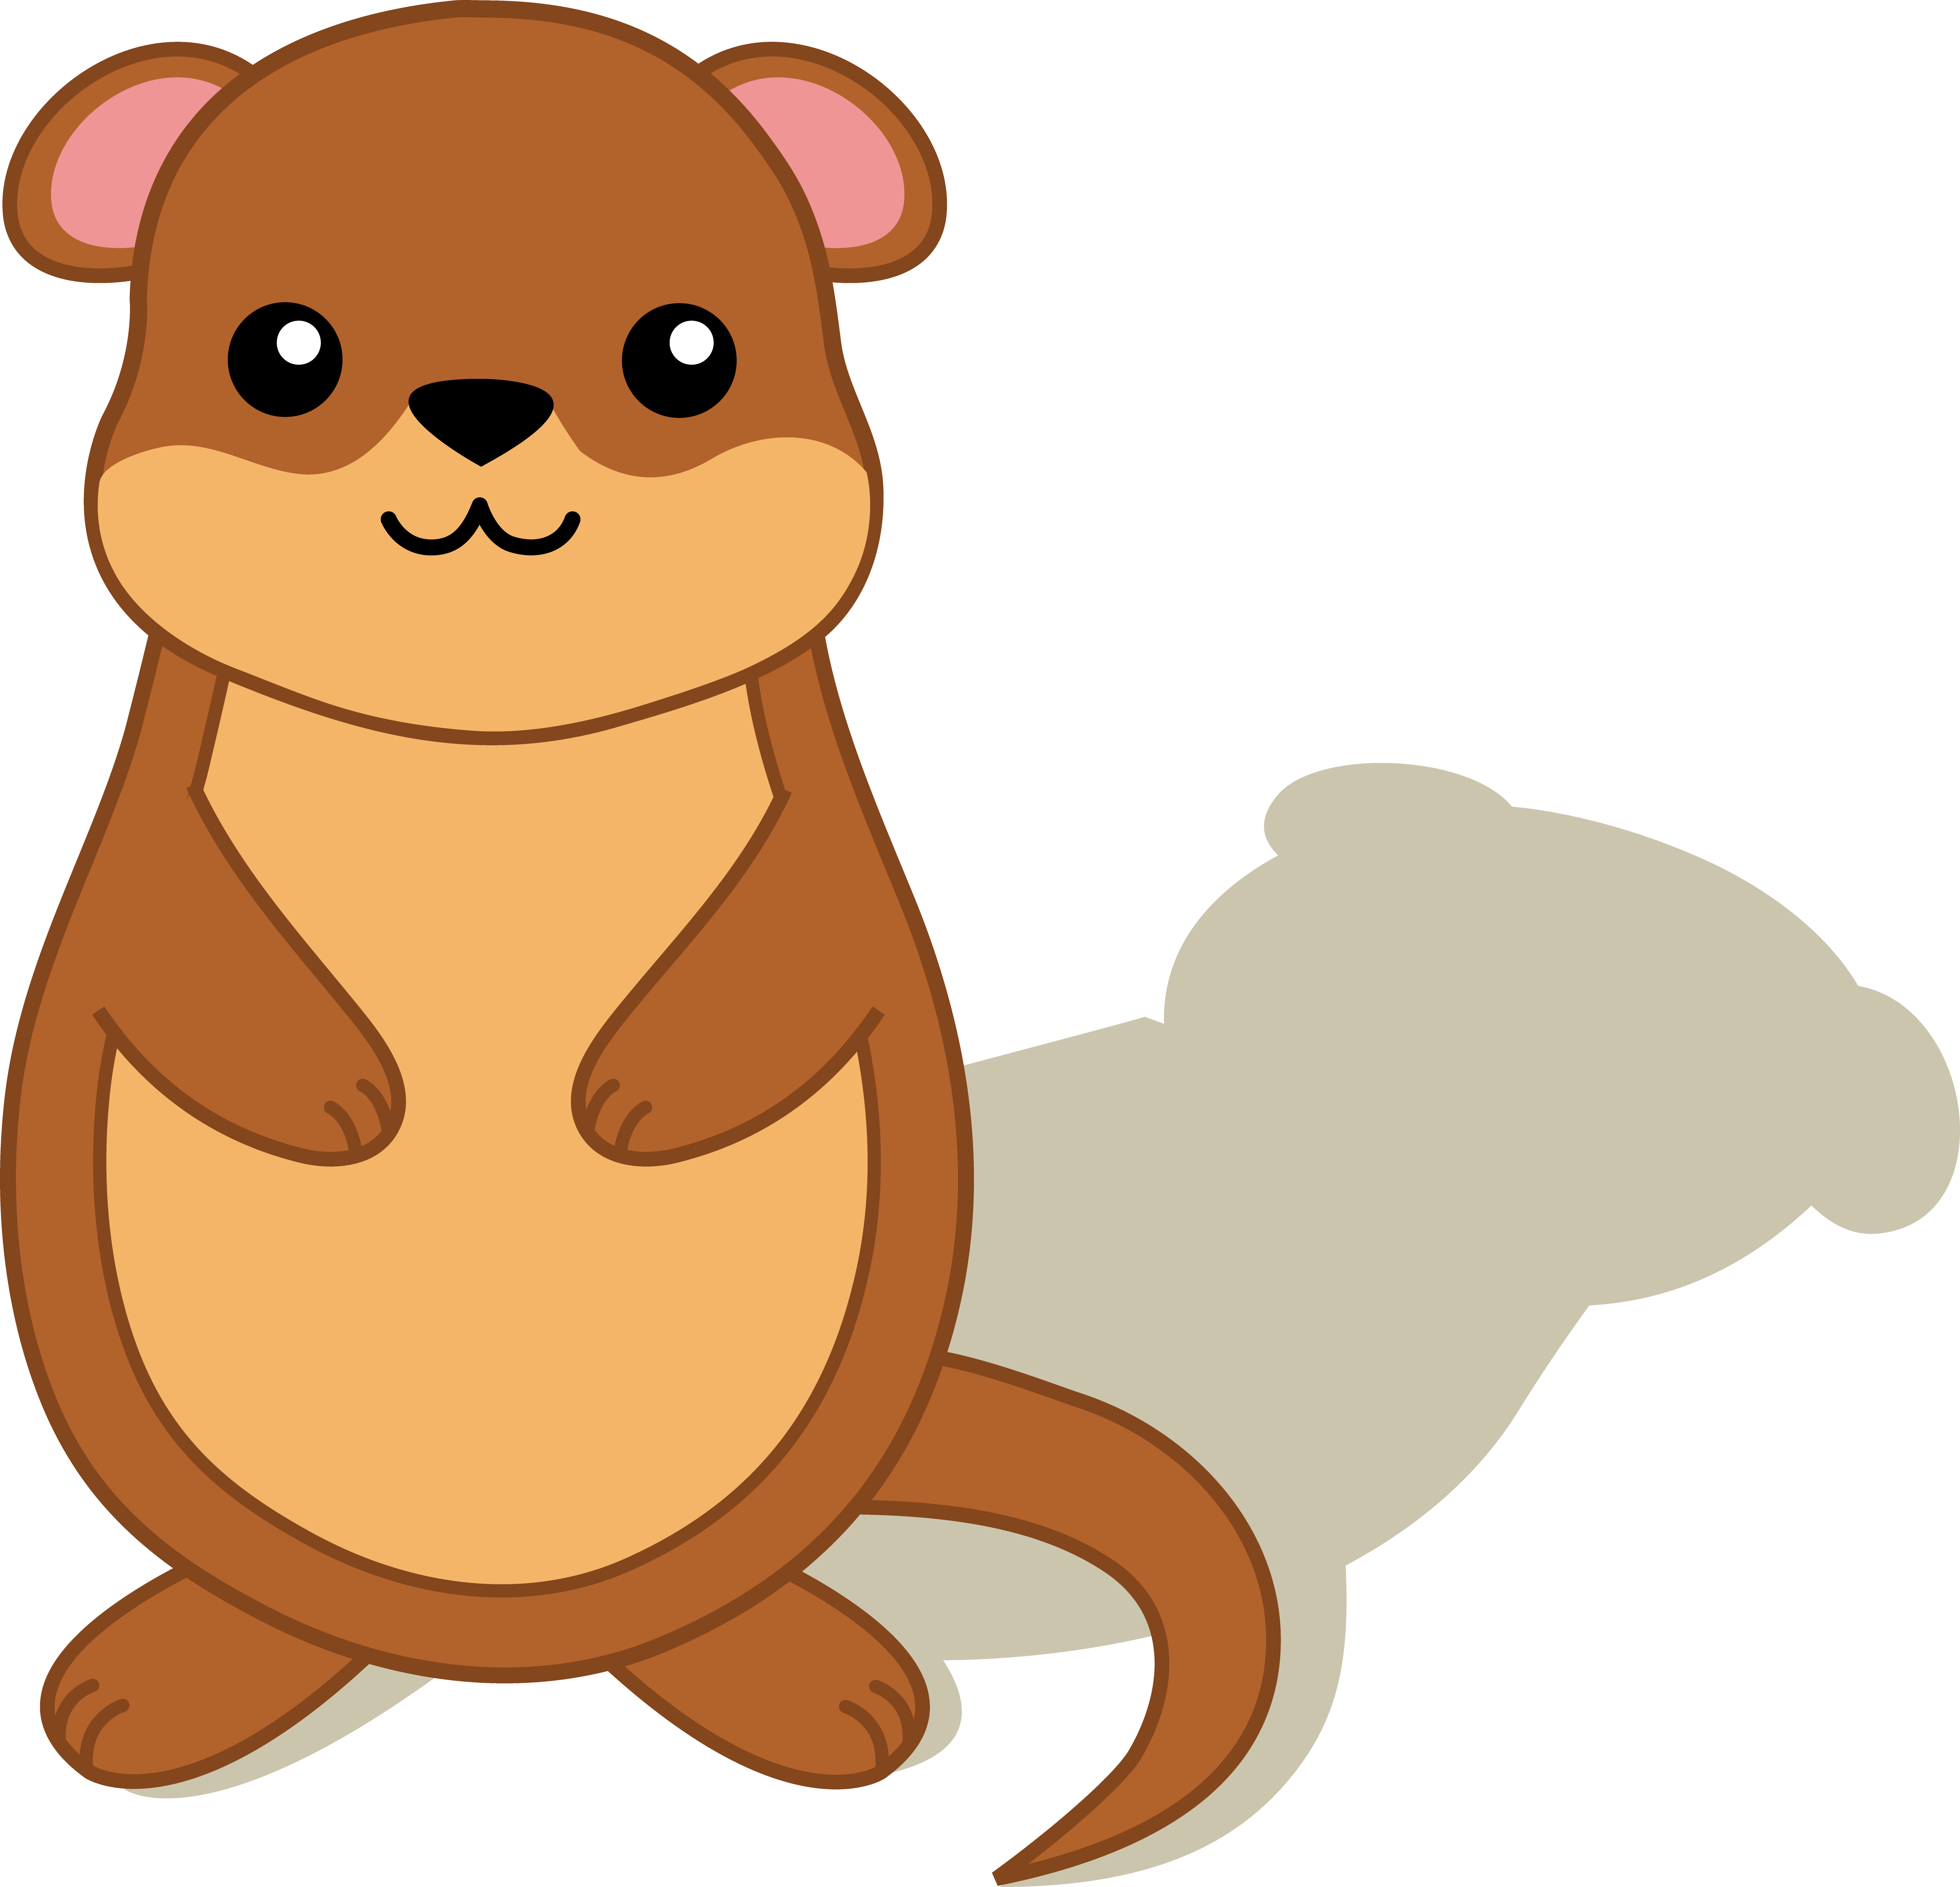 groundhog day clipart cute